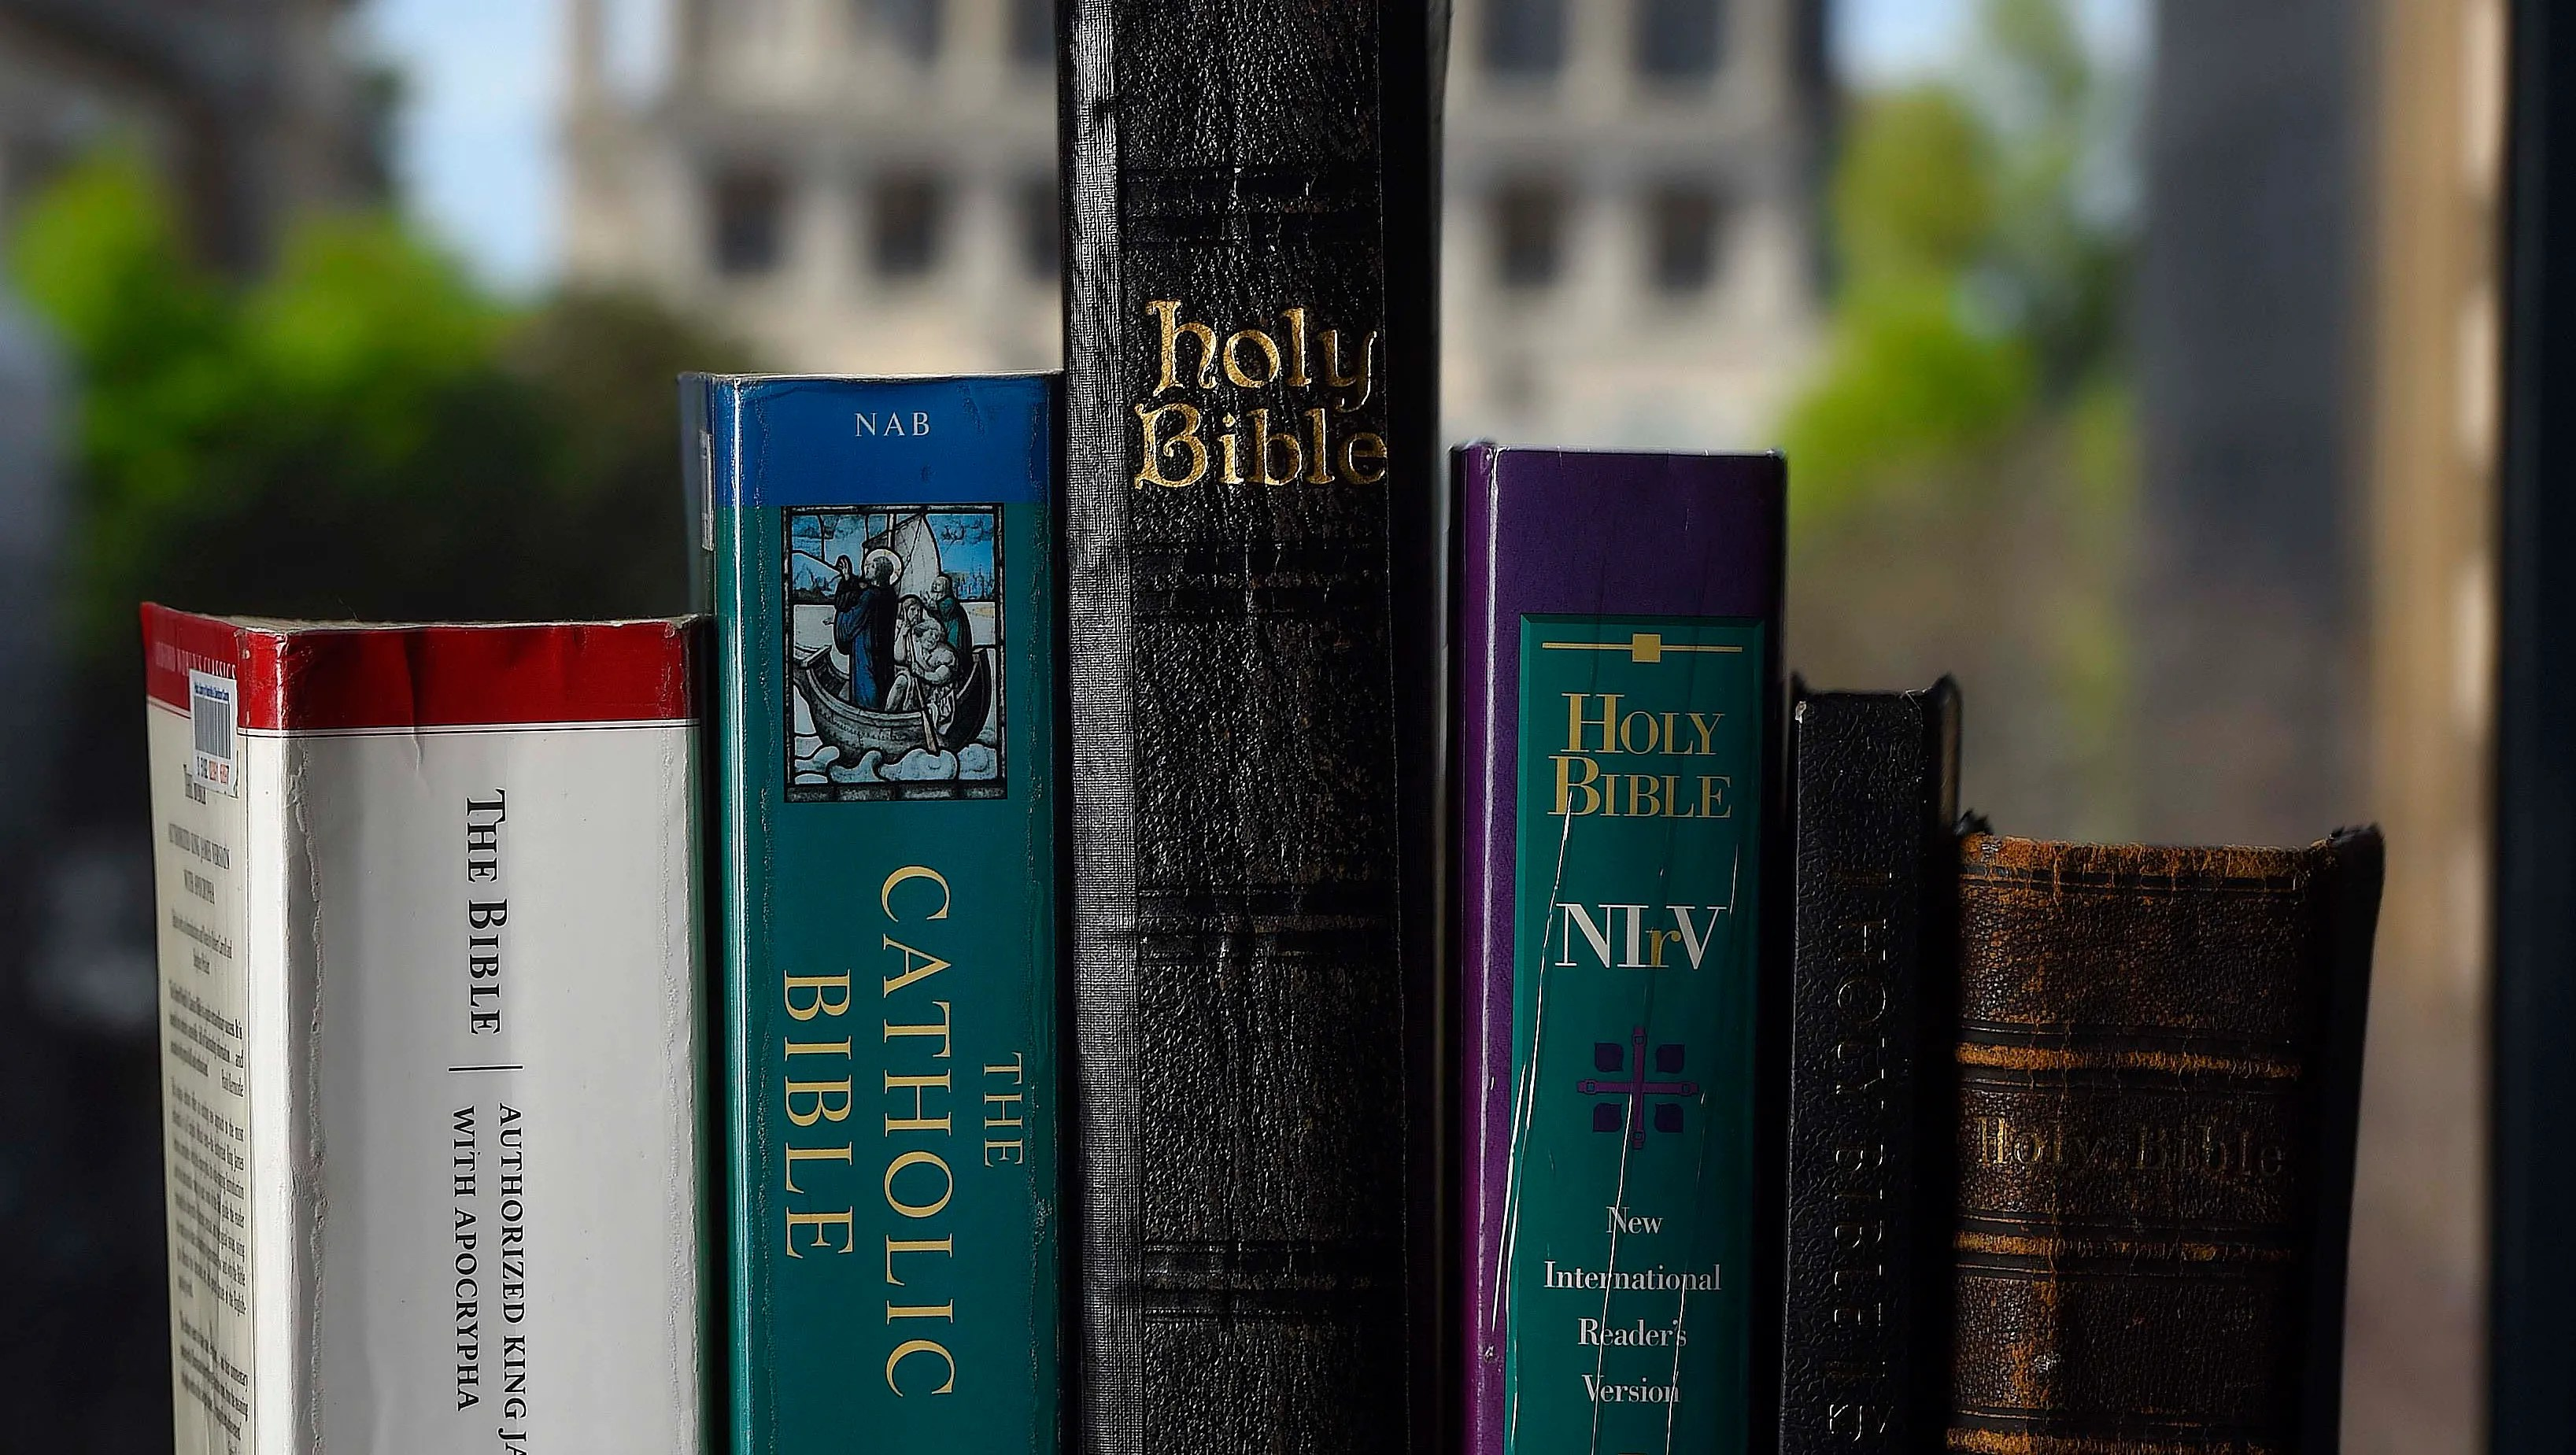 It's back. Resolution to make the Bible Tennessee's official state book joins slate of religion legislation